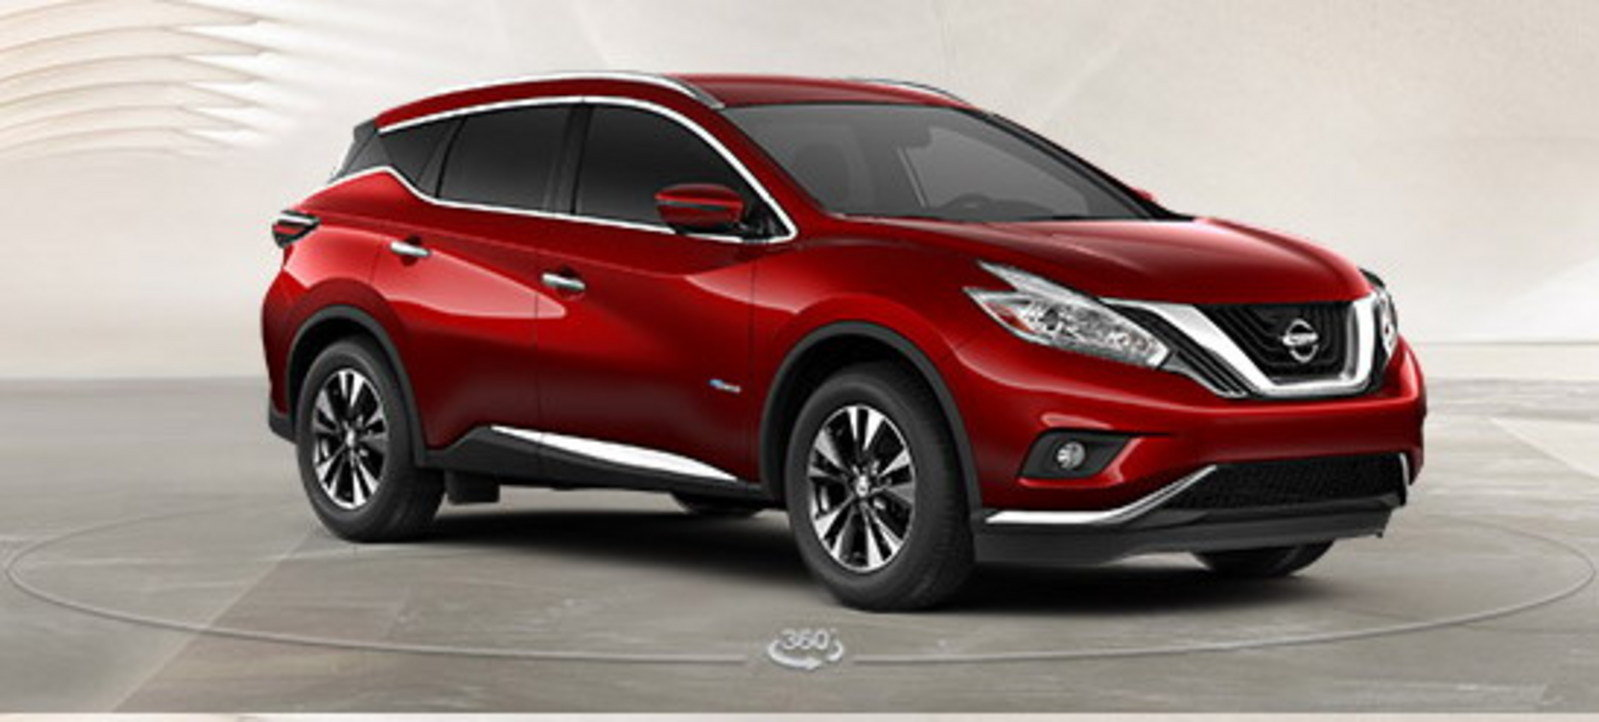 2016 nissan murano hybrid review gallery top speed. Black Bedroom Furniture Sets. Home Design Ideas